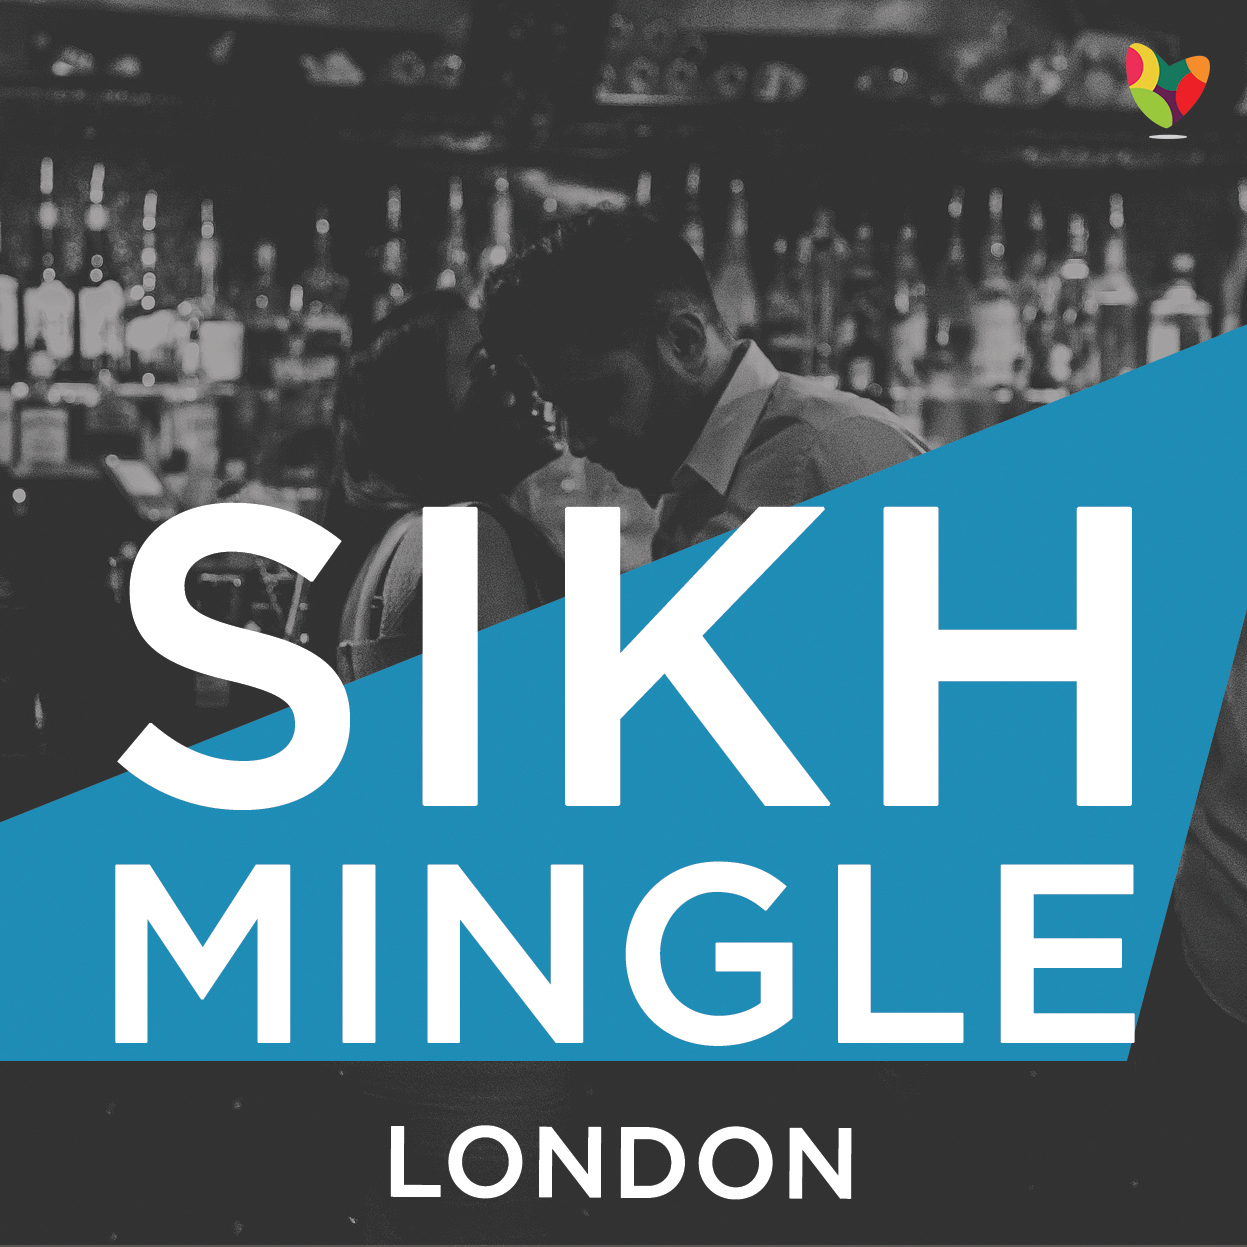 sikh dating websites Top indian dating site, cupidcom, has an extensive database of singles waiting for you sign up today to meet local singles and start flirting.